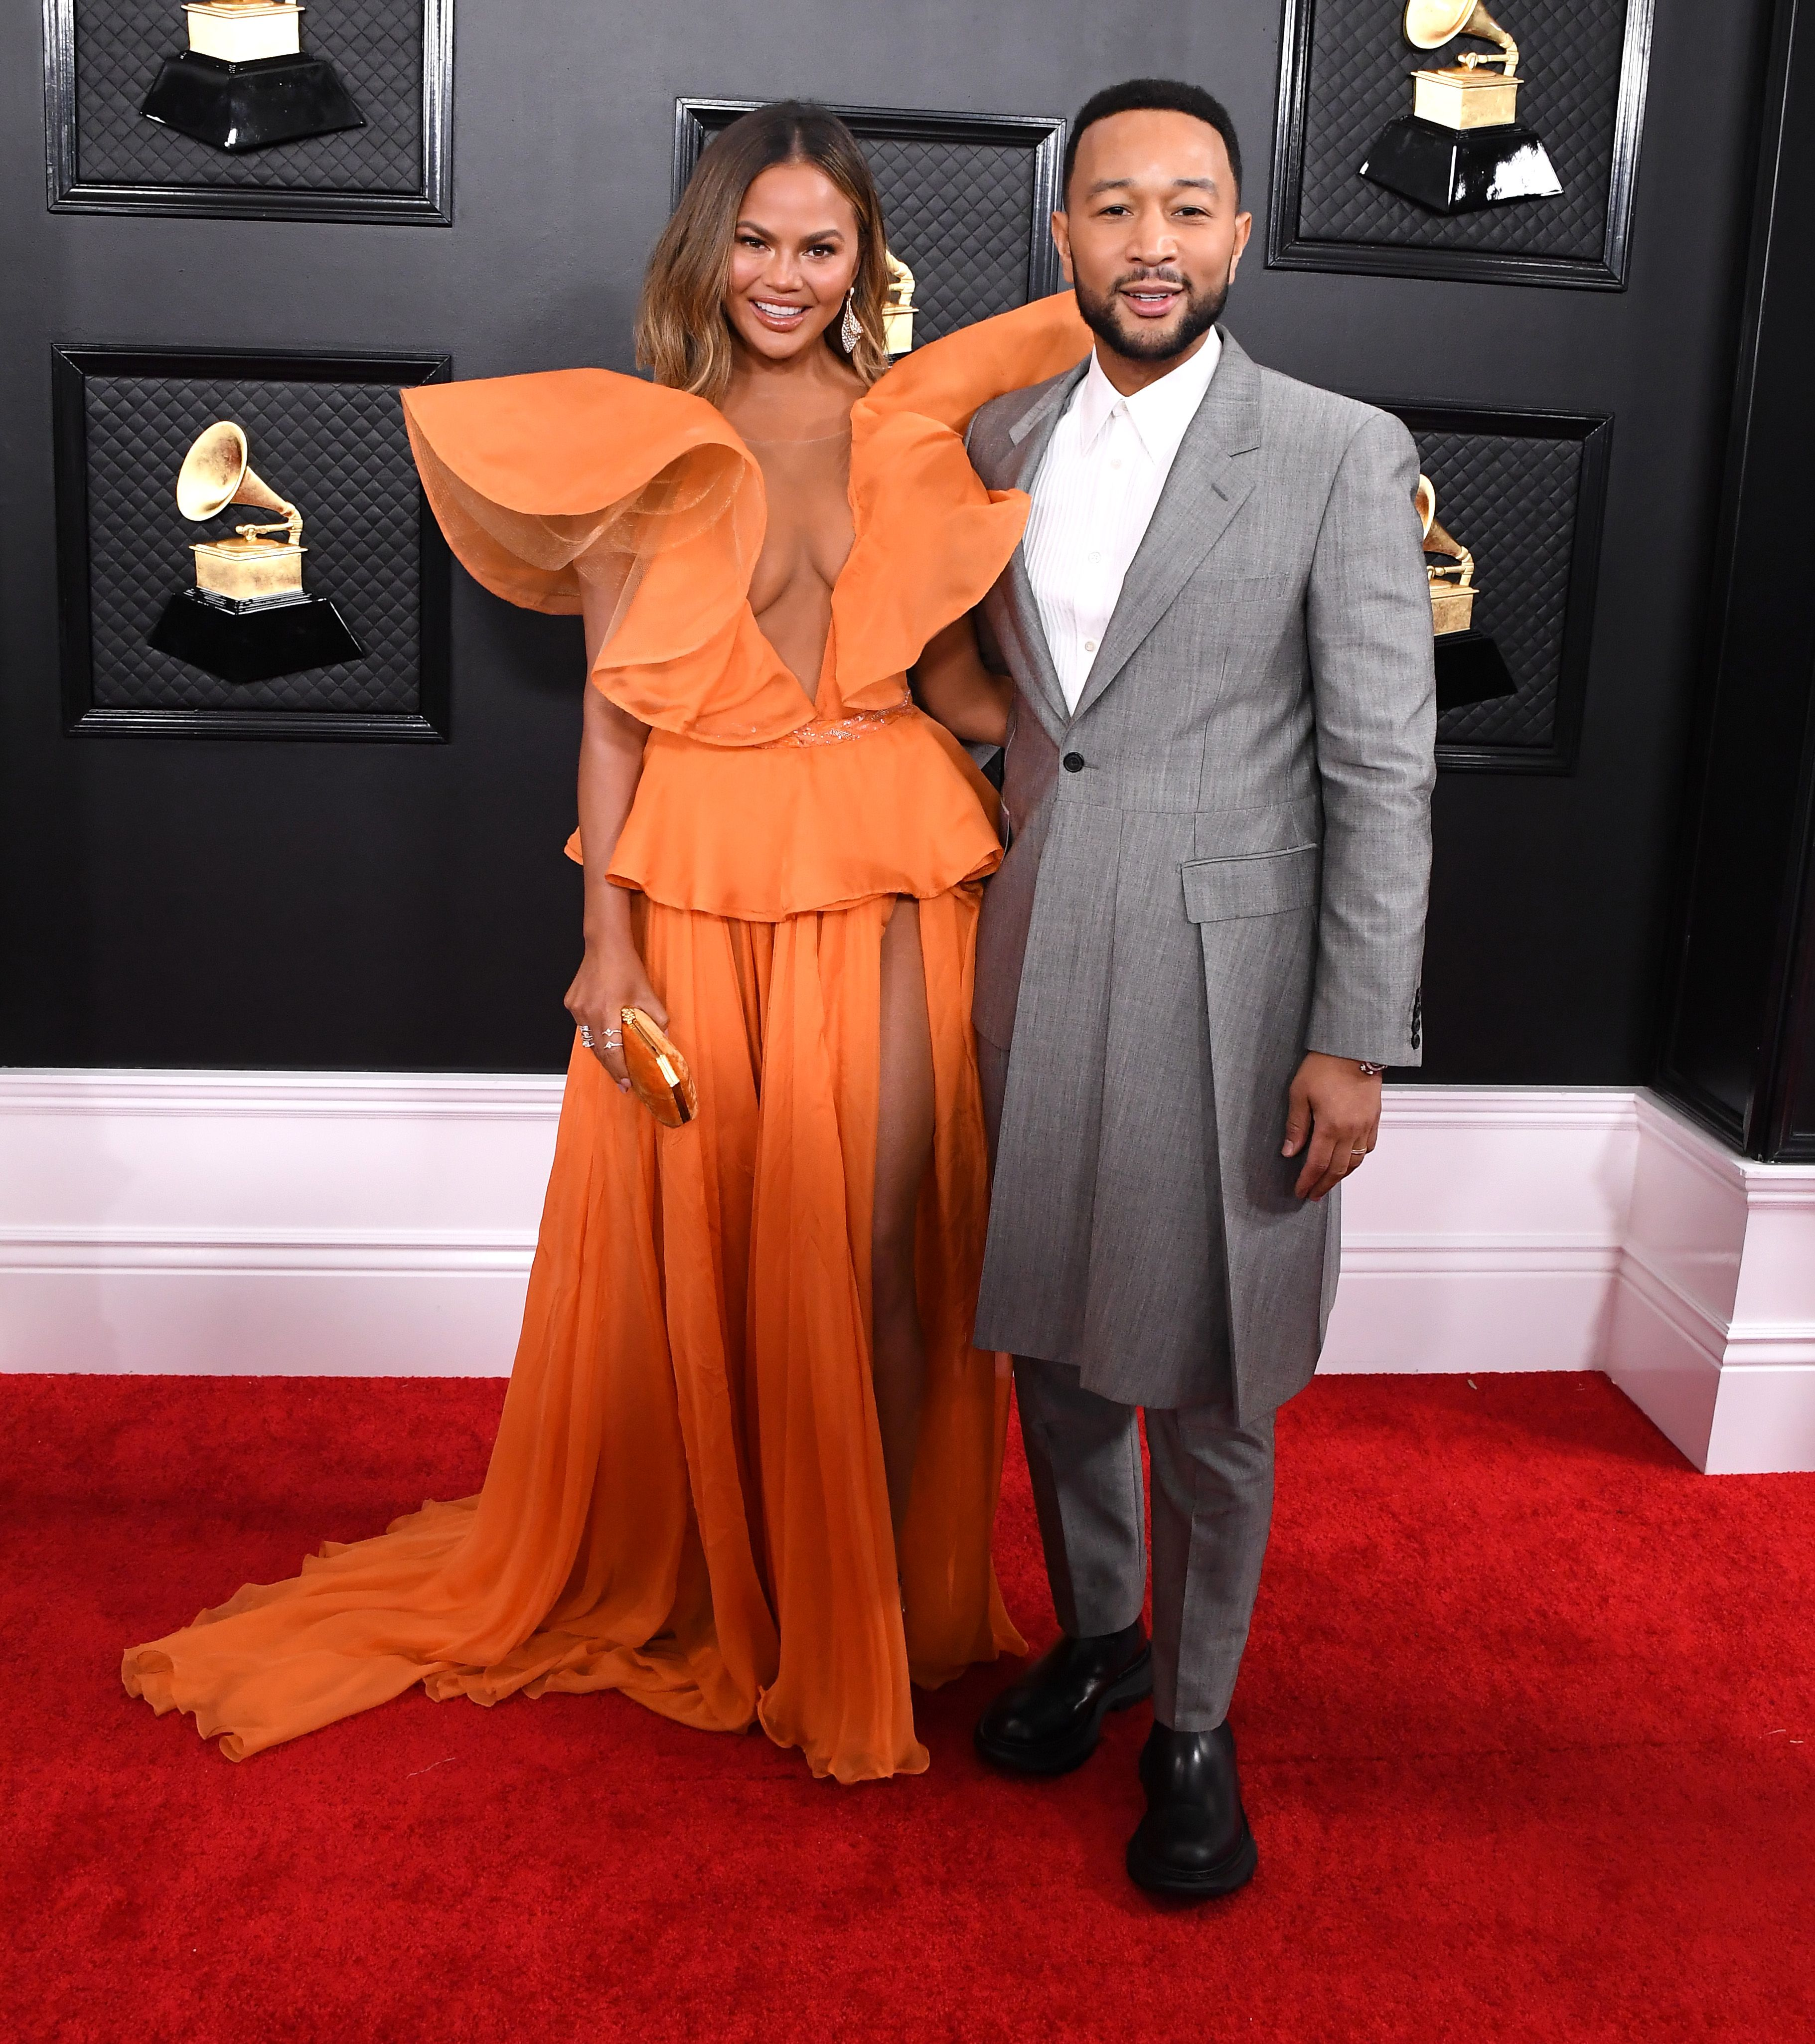 Chrissy Teigen and John Legend Celebrated His Grammy Win With an Ariana Grande Dance Party